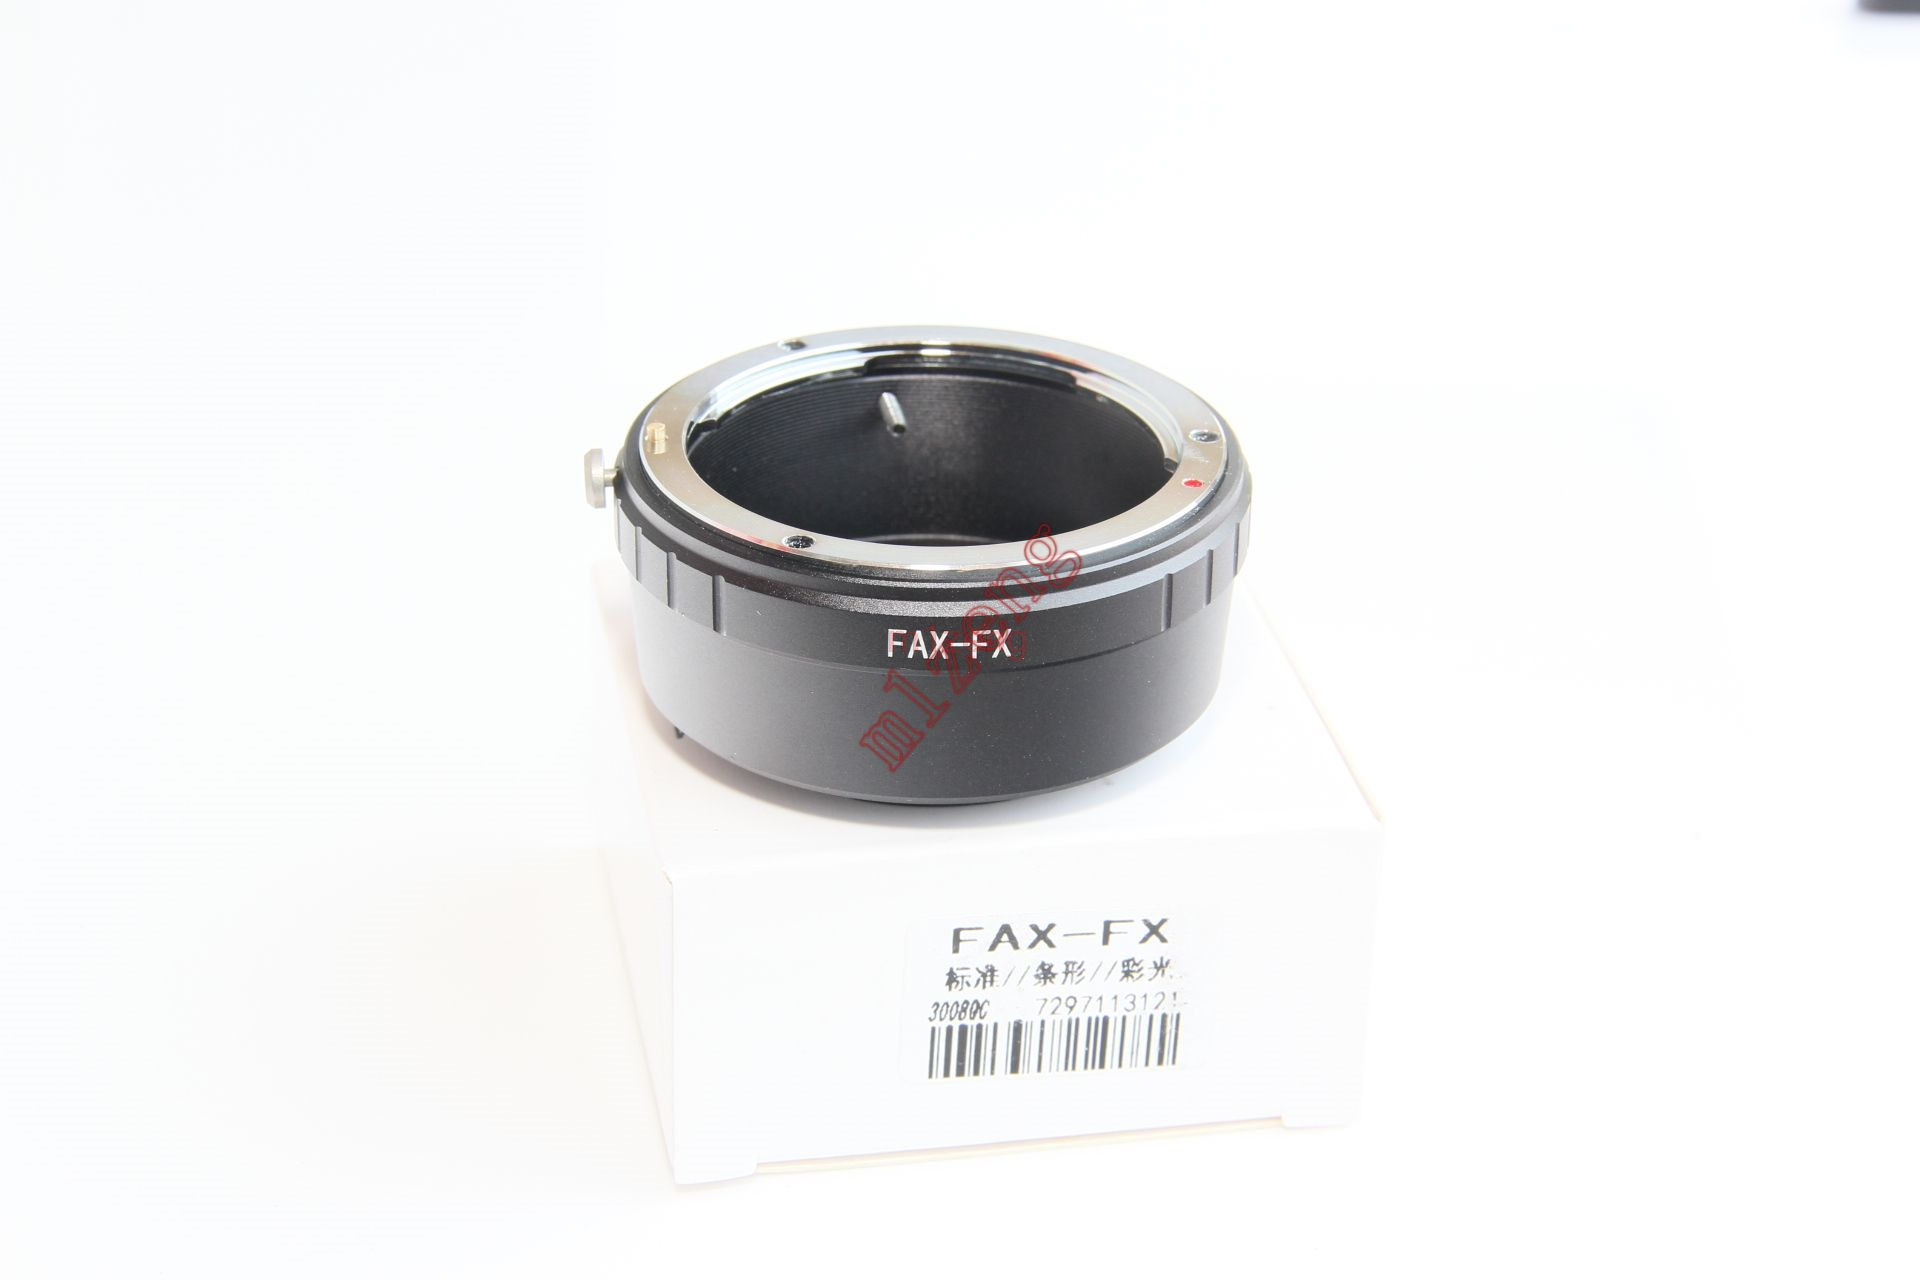 FAX fujica to fx lens adapter ring for Fujifilm fuji X X-E2/X-E1/X-Pro1/X-M1/X-A2/X-A1/X-T1 xt2 xt10 xt20 xa3 xpro2 camera